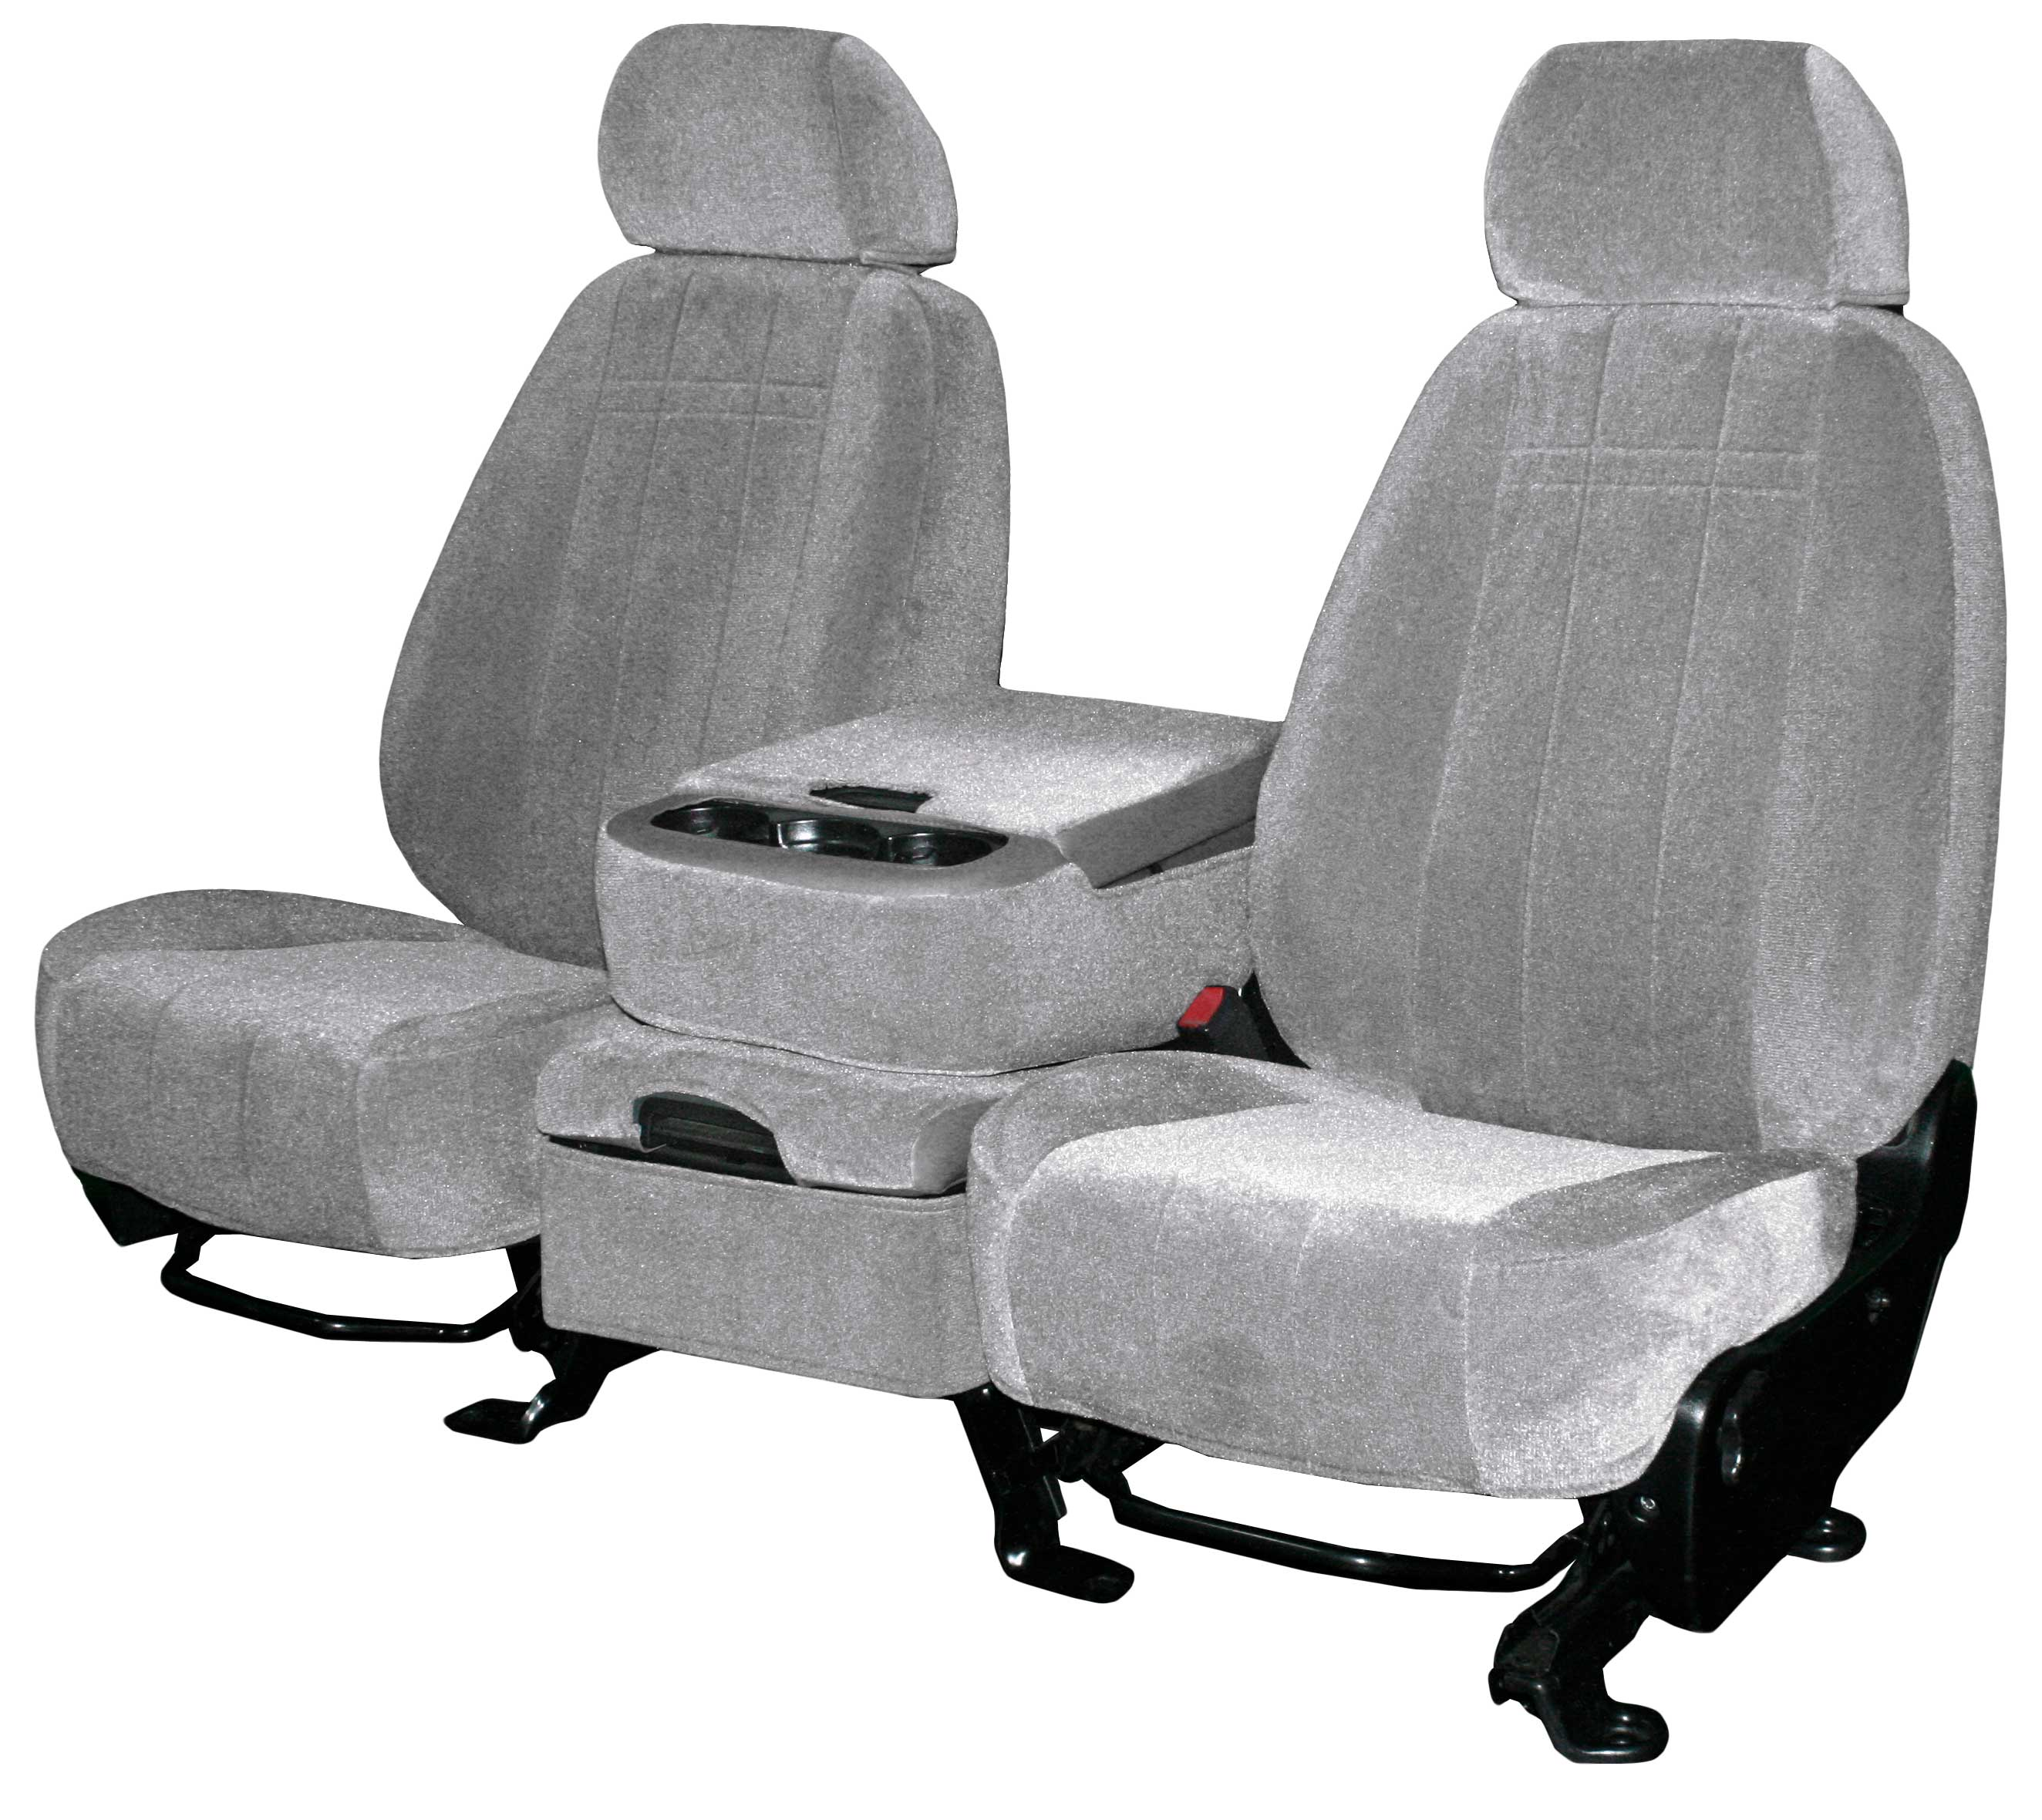 seat cover custom tailored seat covers dg232 08ra fits 02. Cars Review. Best American Auto & Cars Review